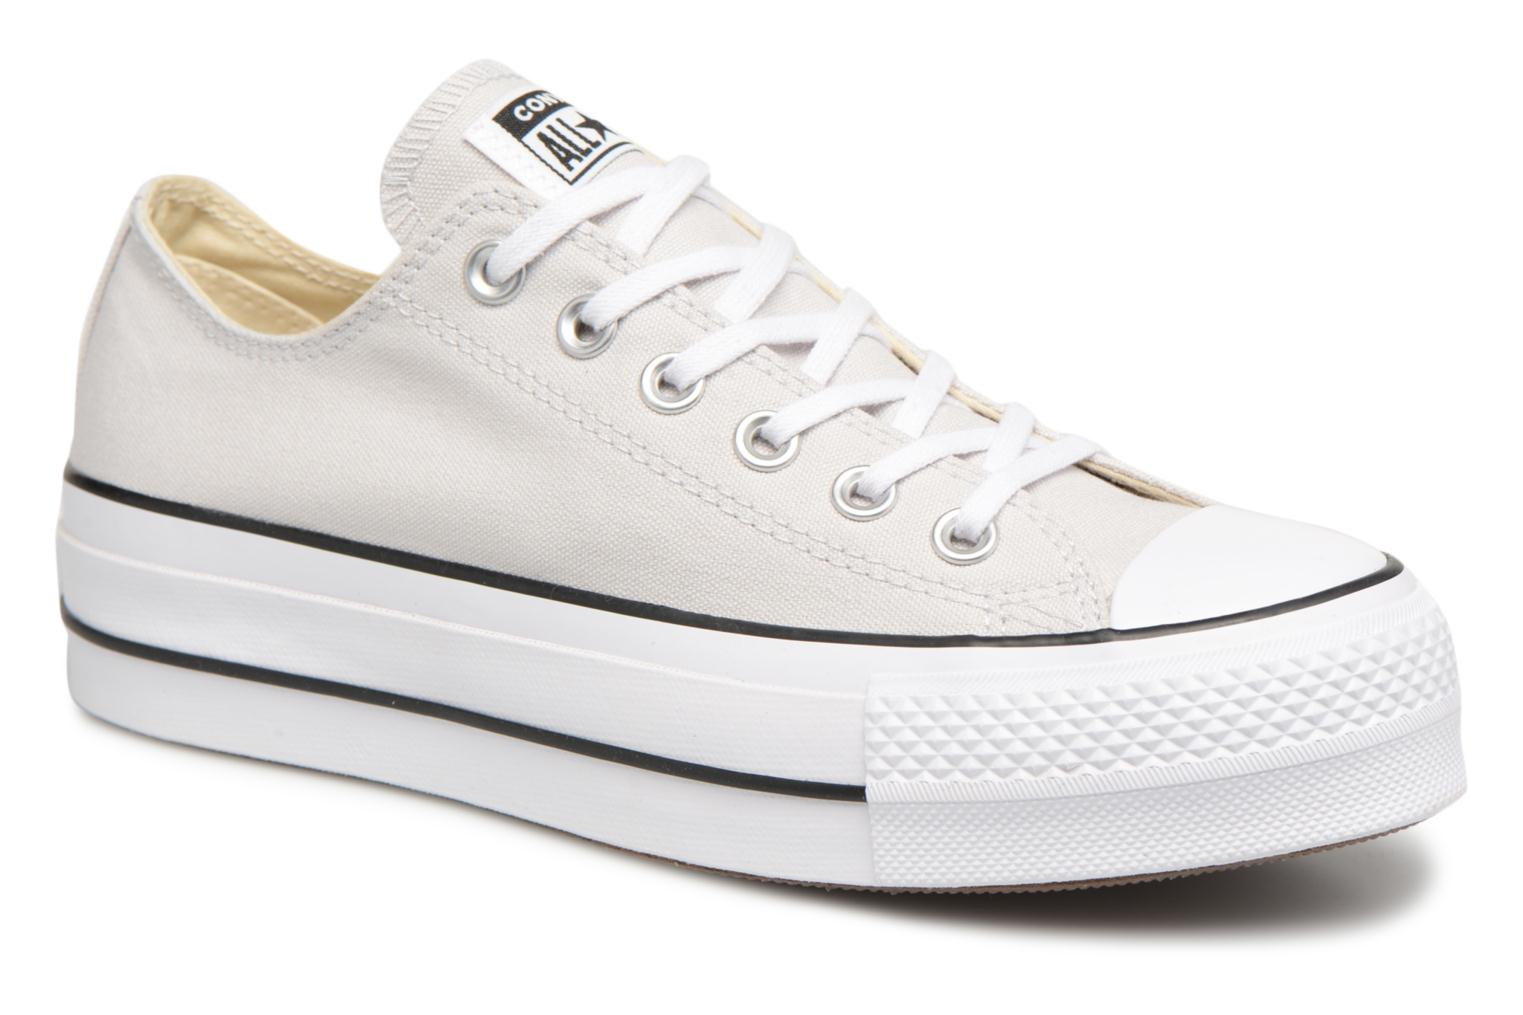 Converse All Star Marques Femme Taylor Chuck Chaussure Lift PWnWOxw8S